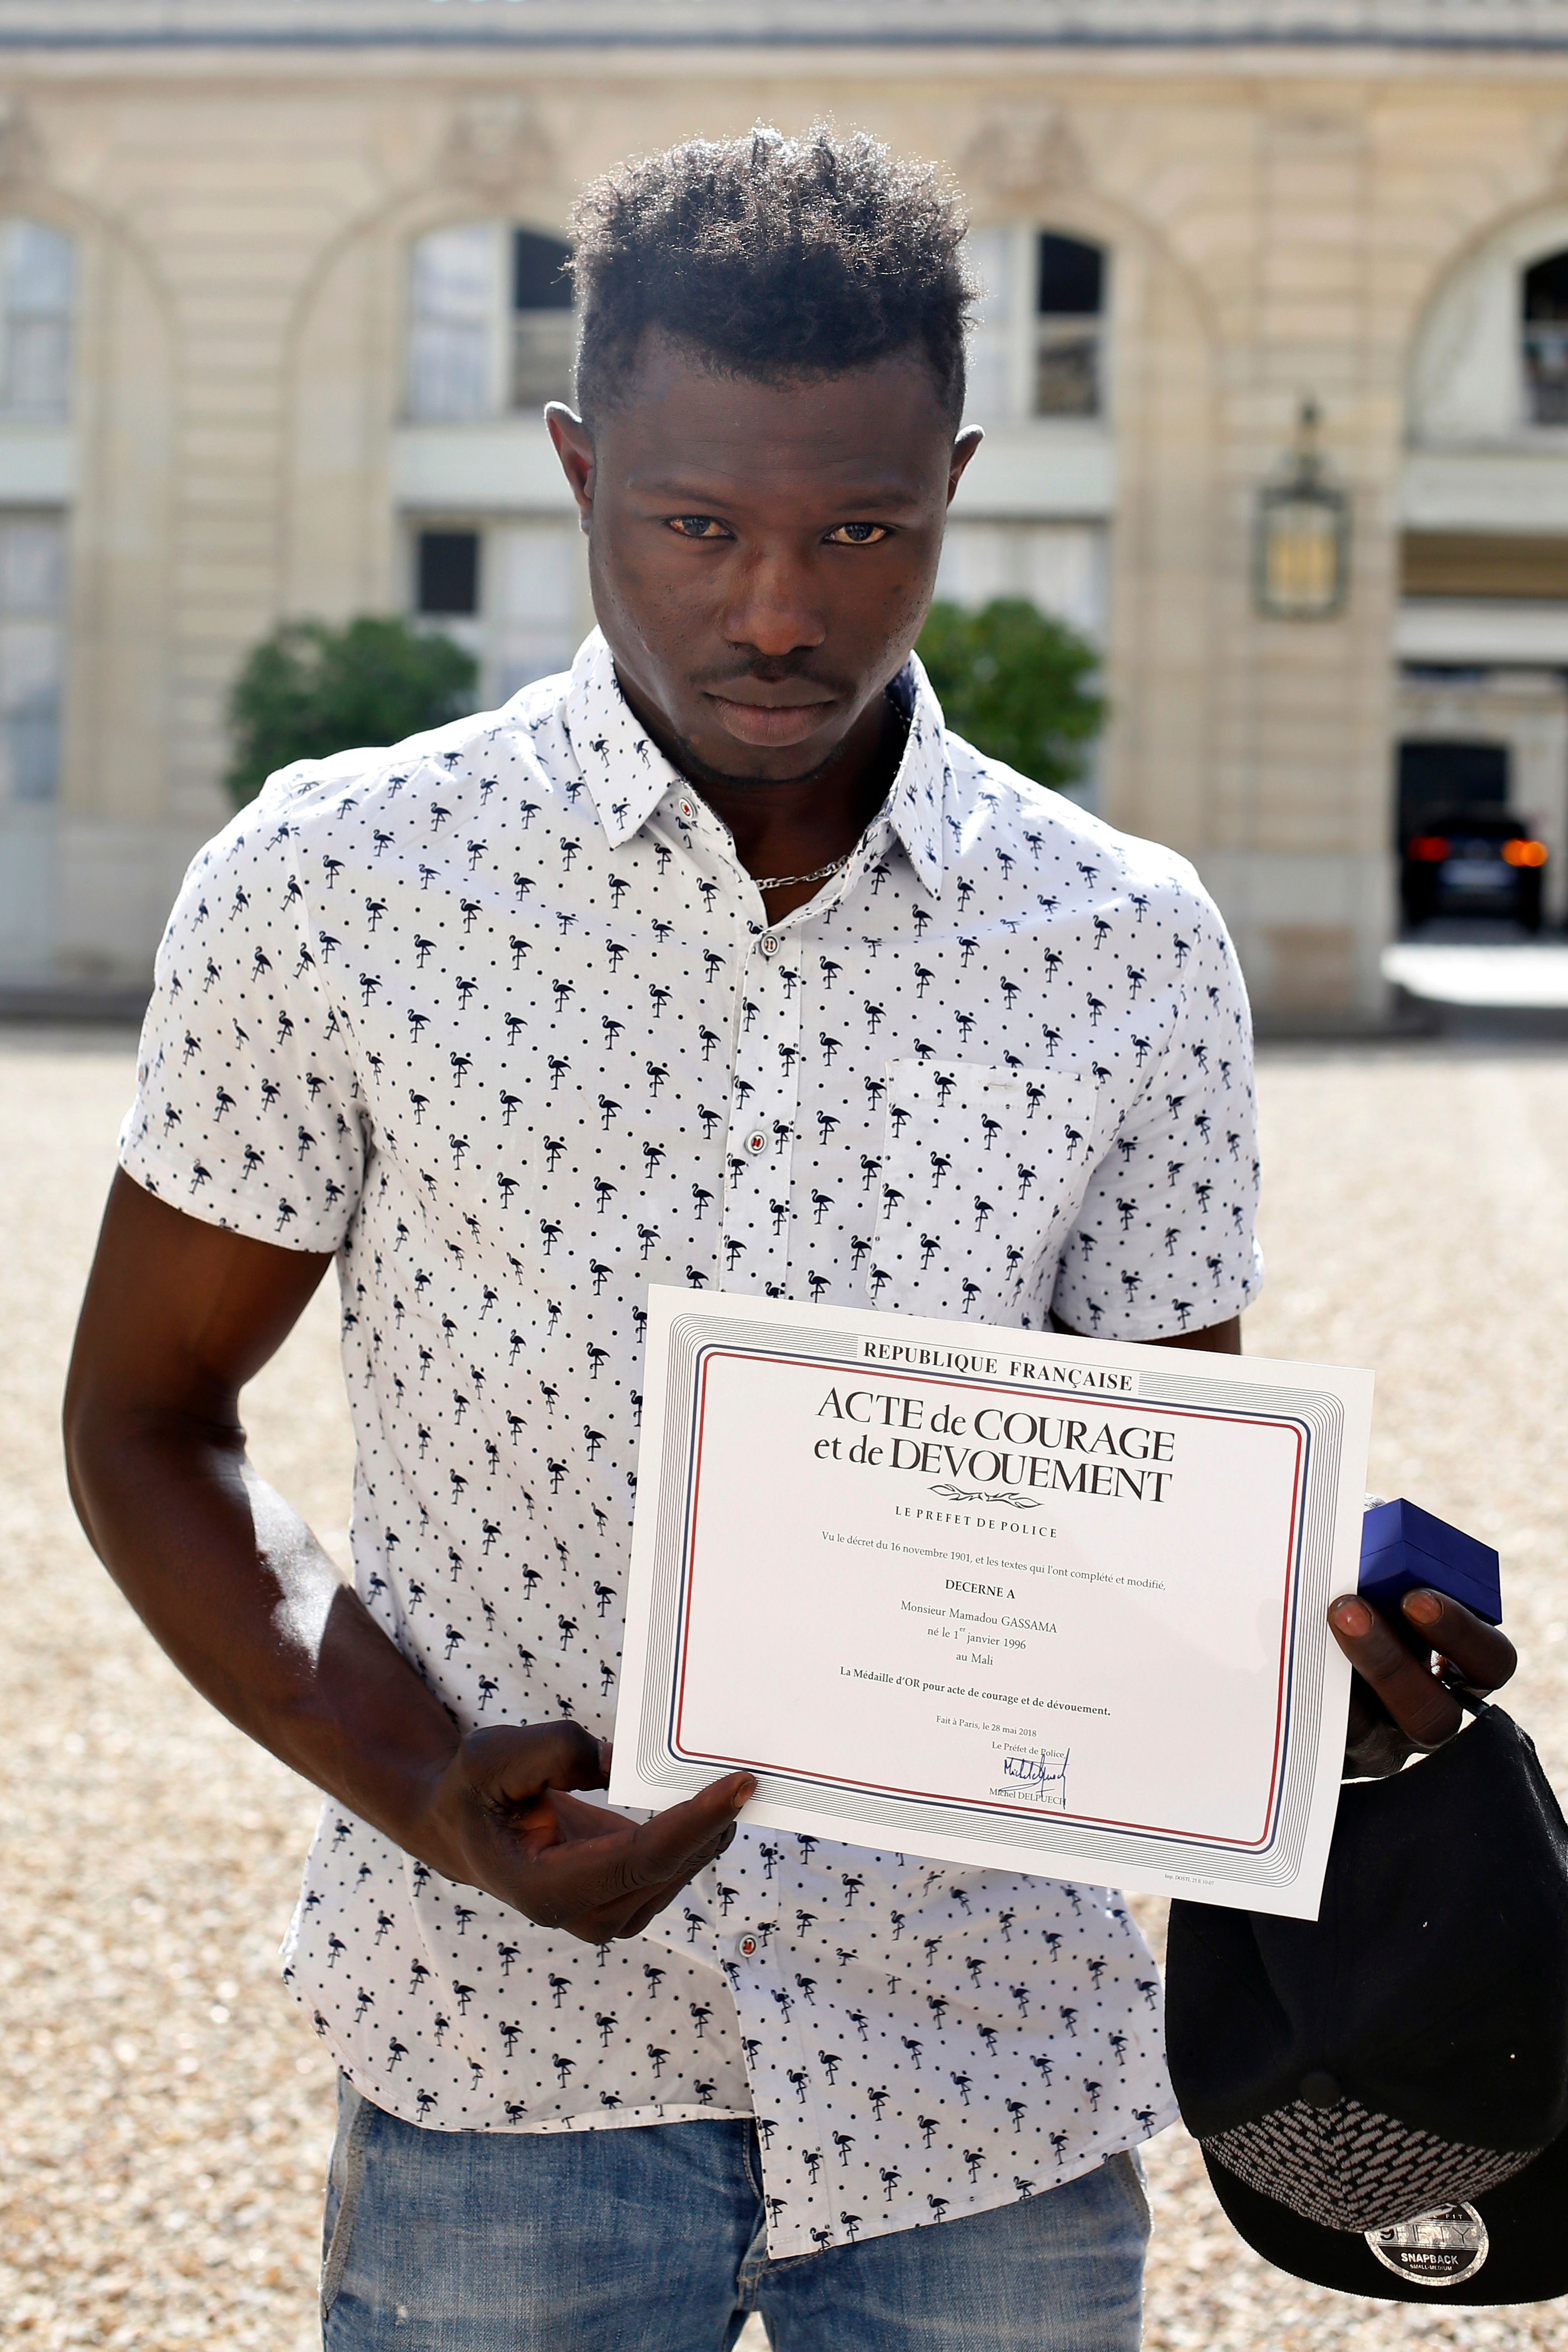 Mamoudou Gassama with his certificate